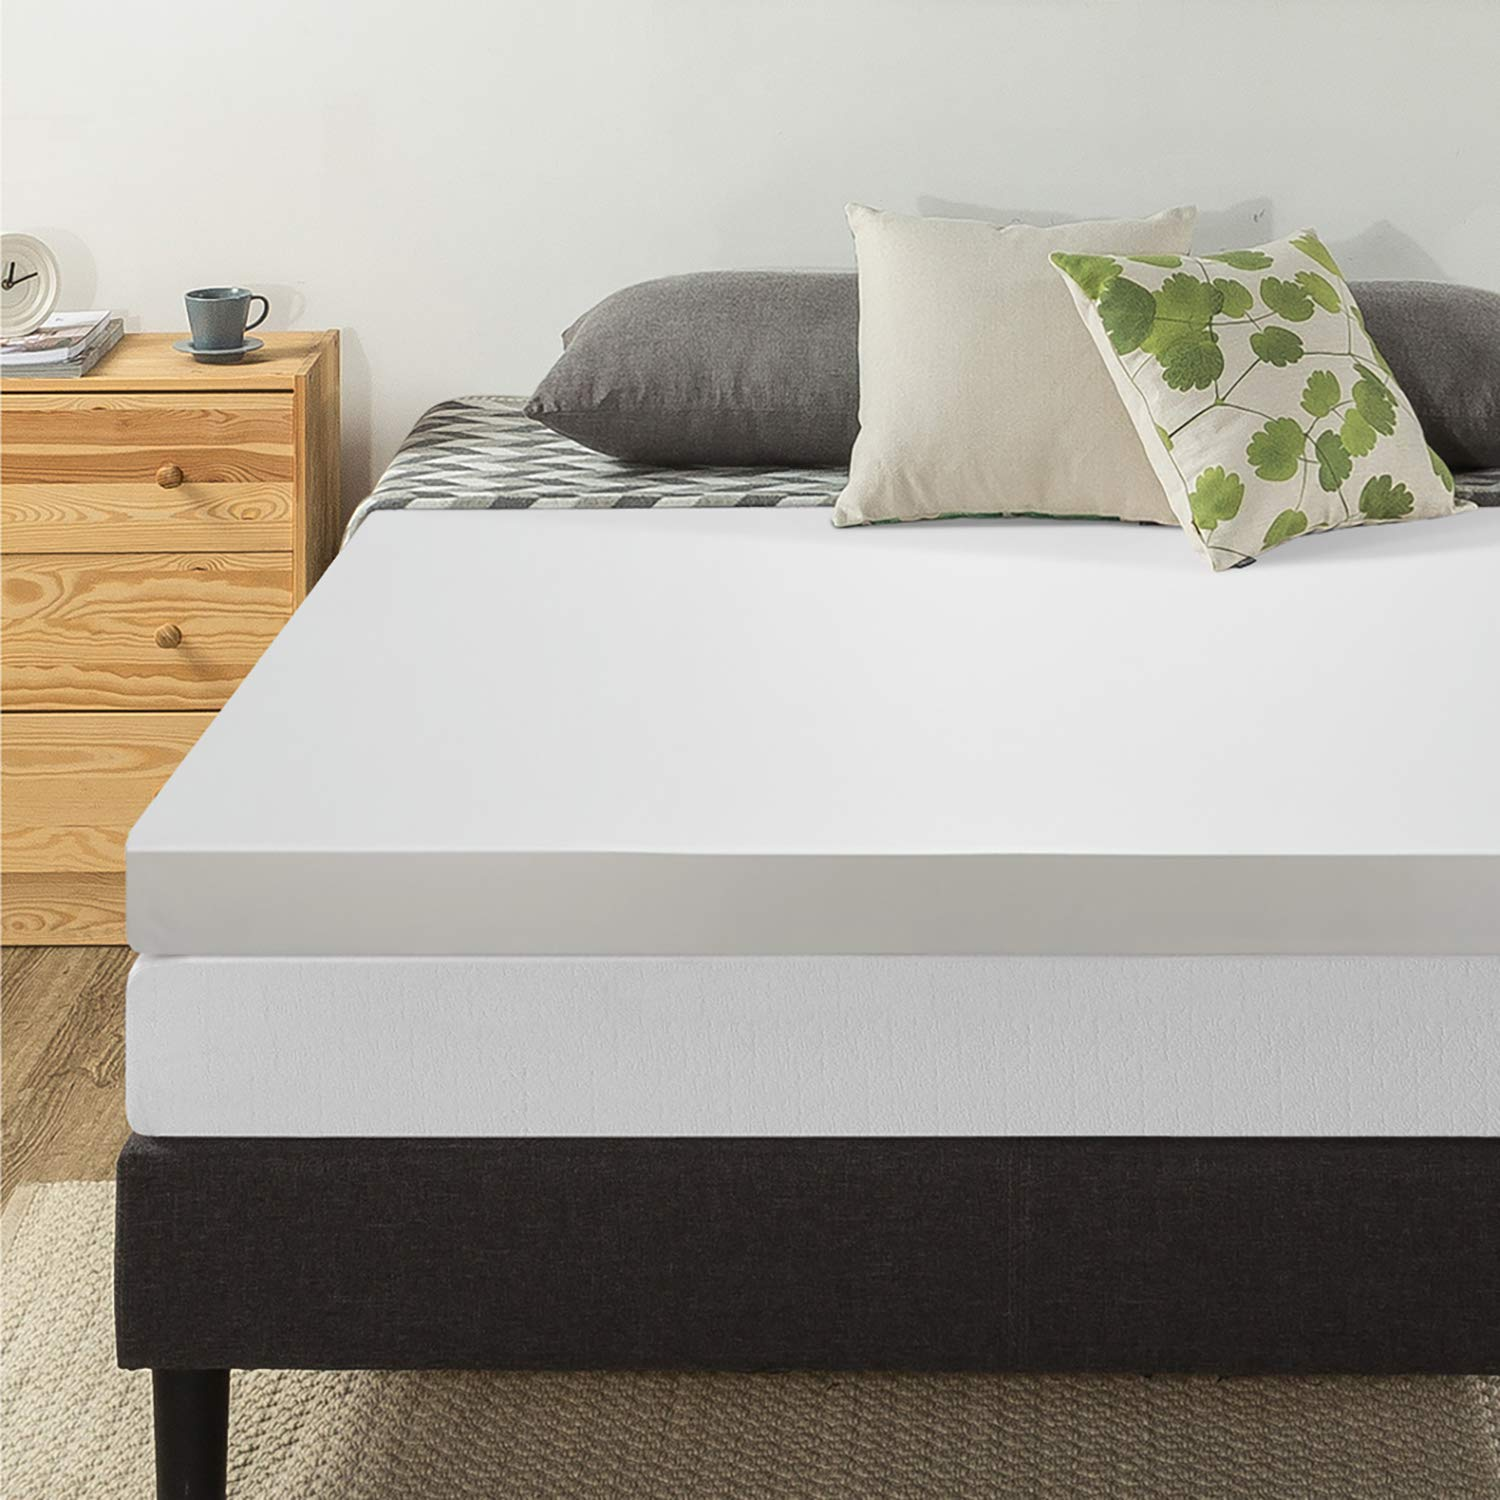 Utilizing Memory Foam Mattress Topper Queen